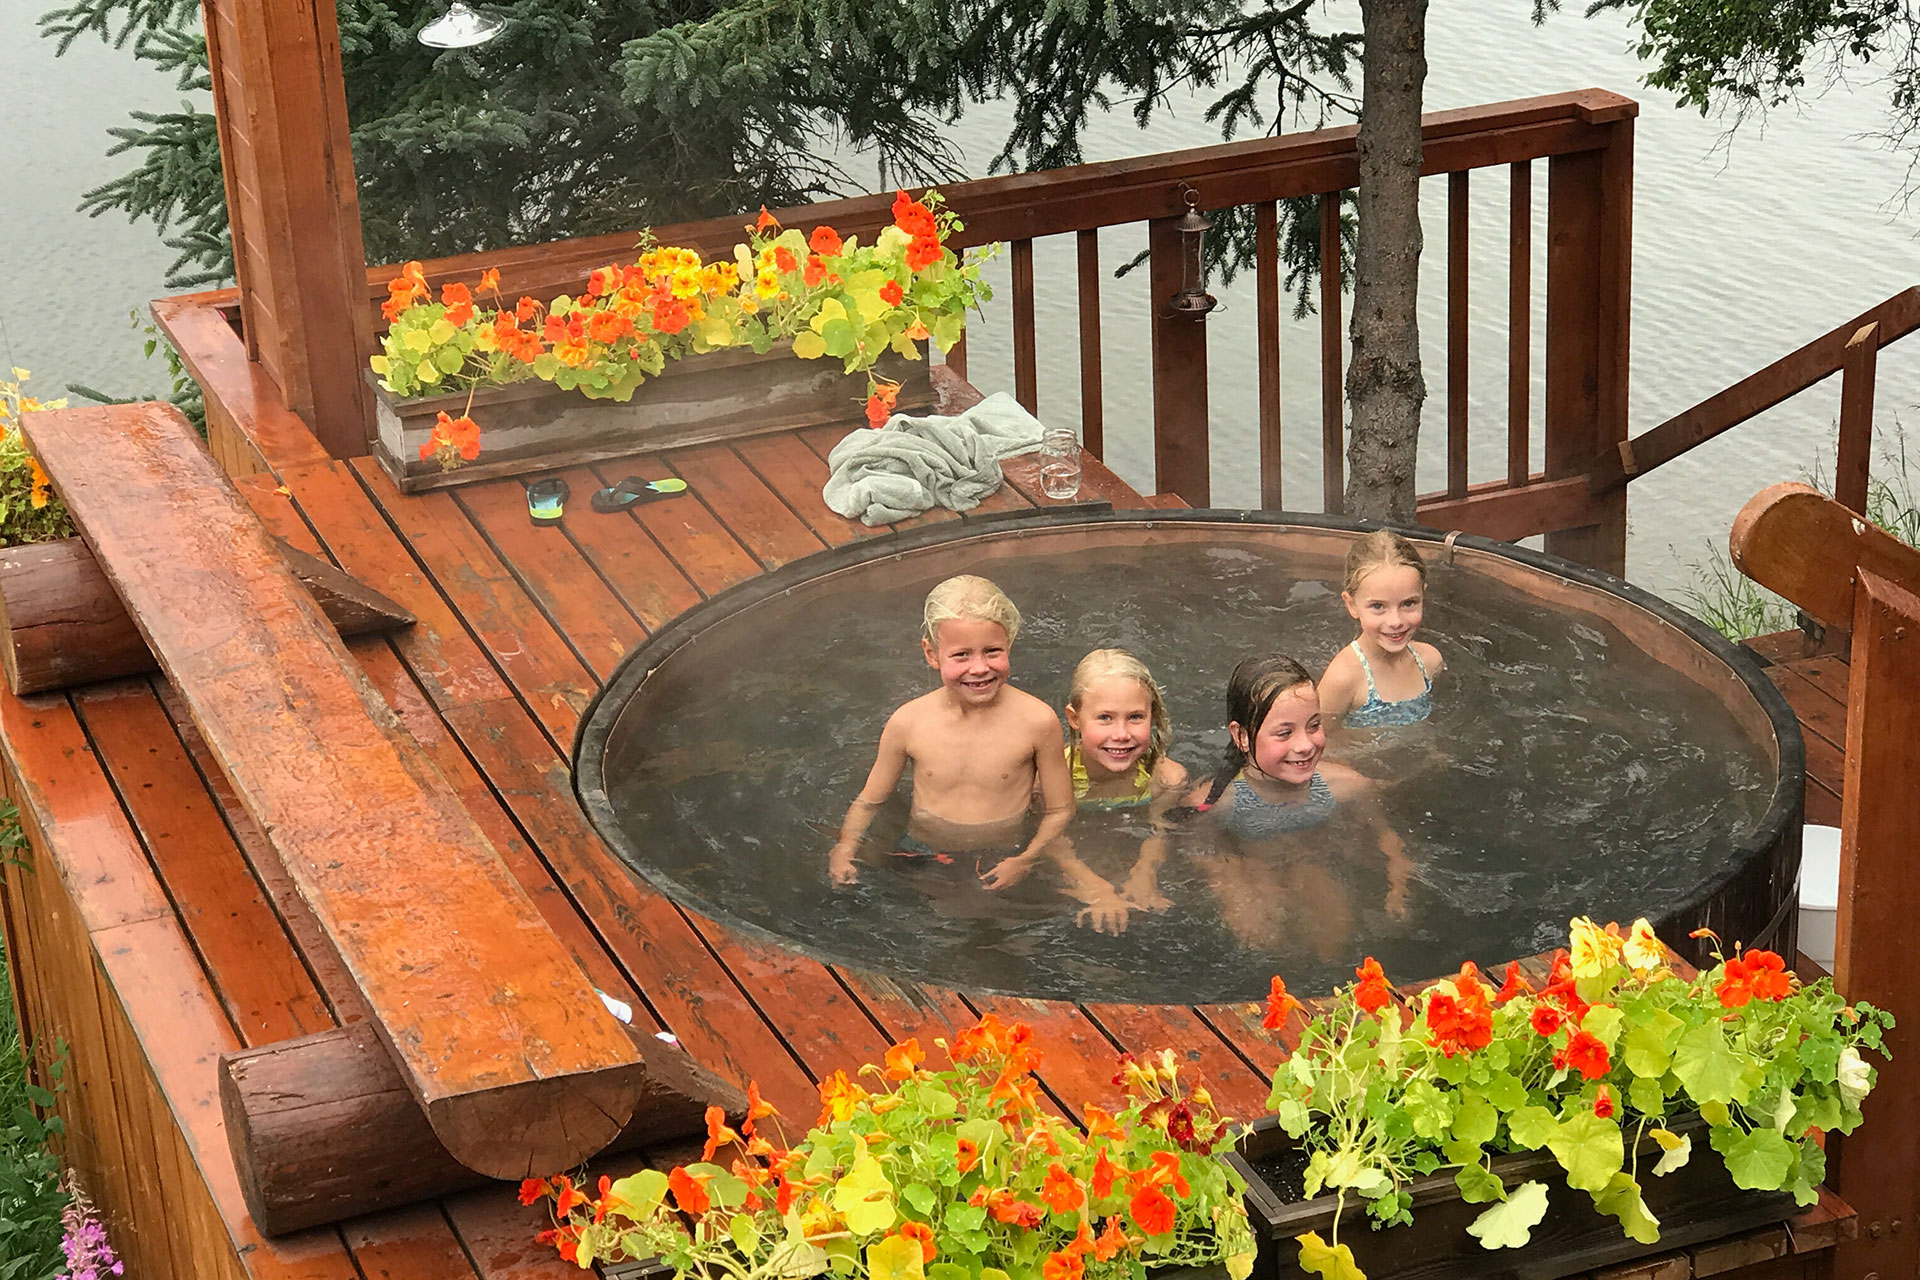 Kids in Hot Tub at Tordrillo Mountain Lodge; Courtesy of Tordrillo Mountain Lodge